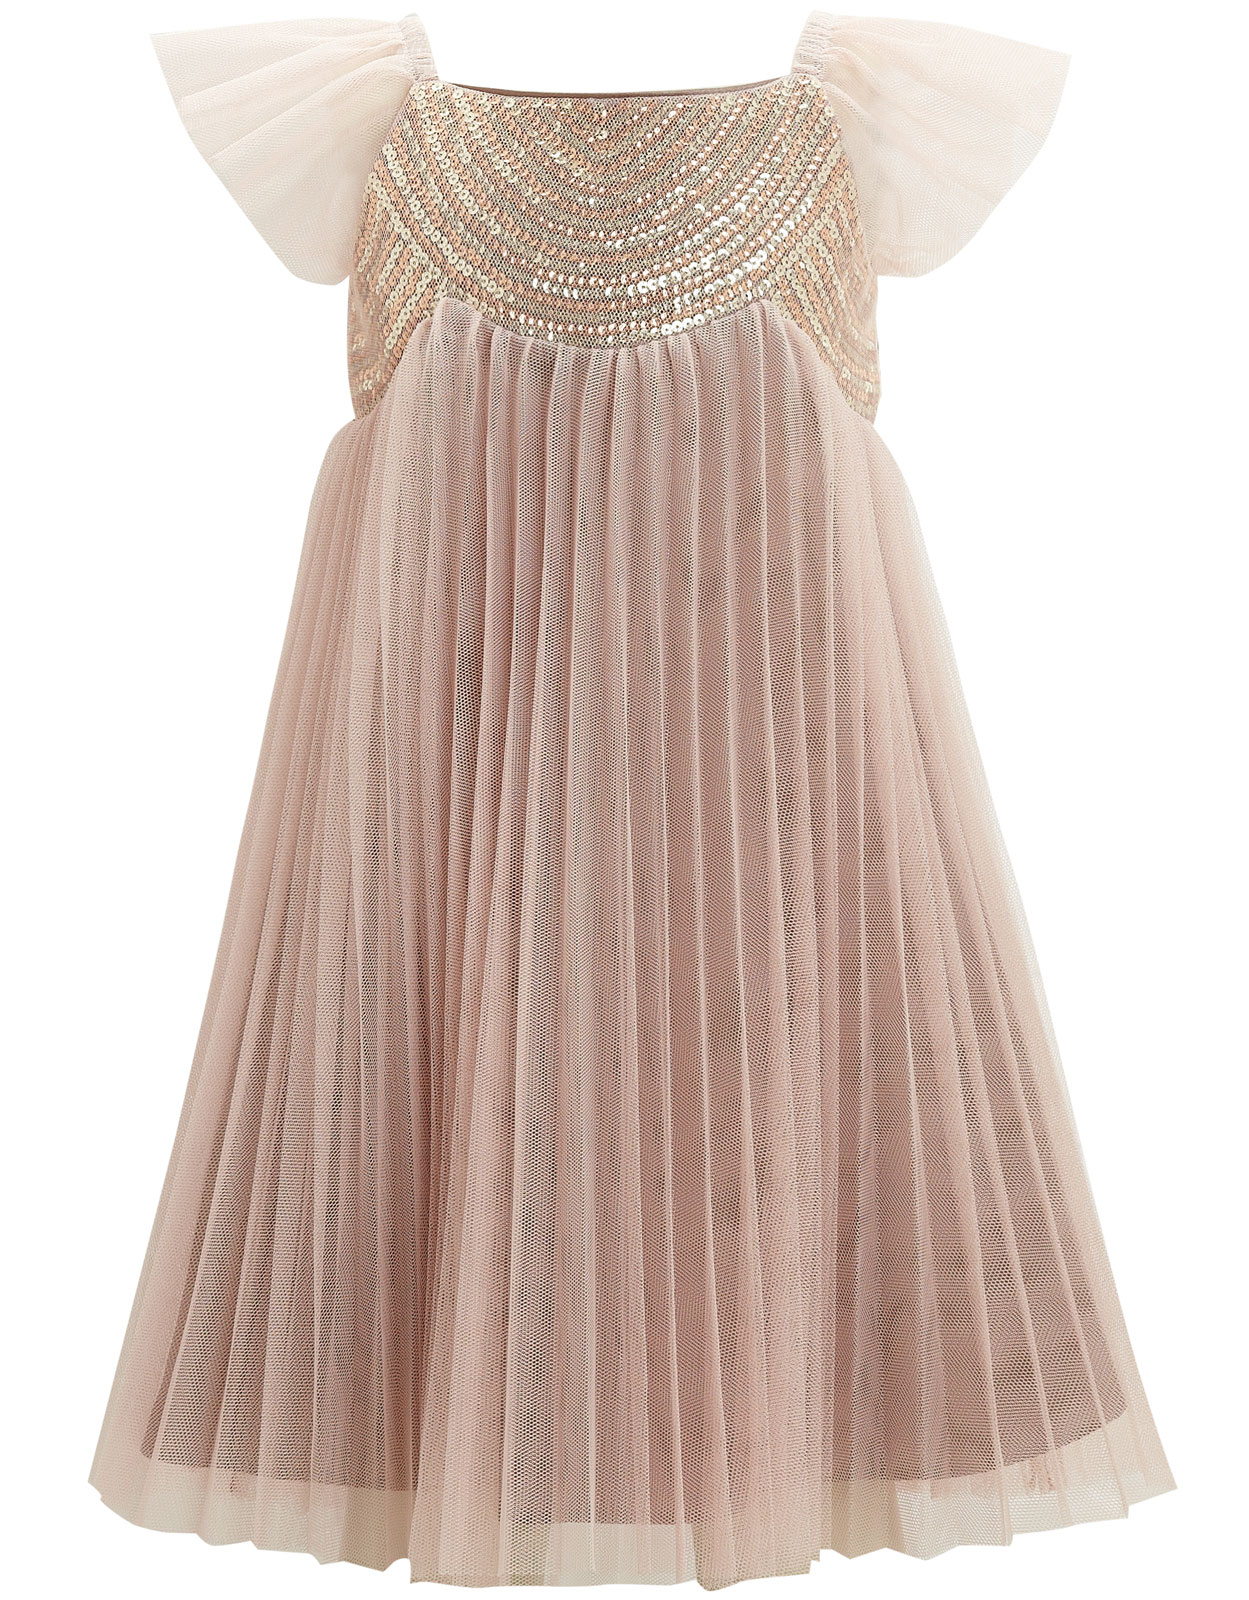 Sparkly pleated dress Kensington Couture